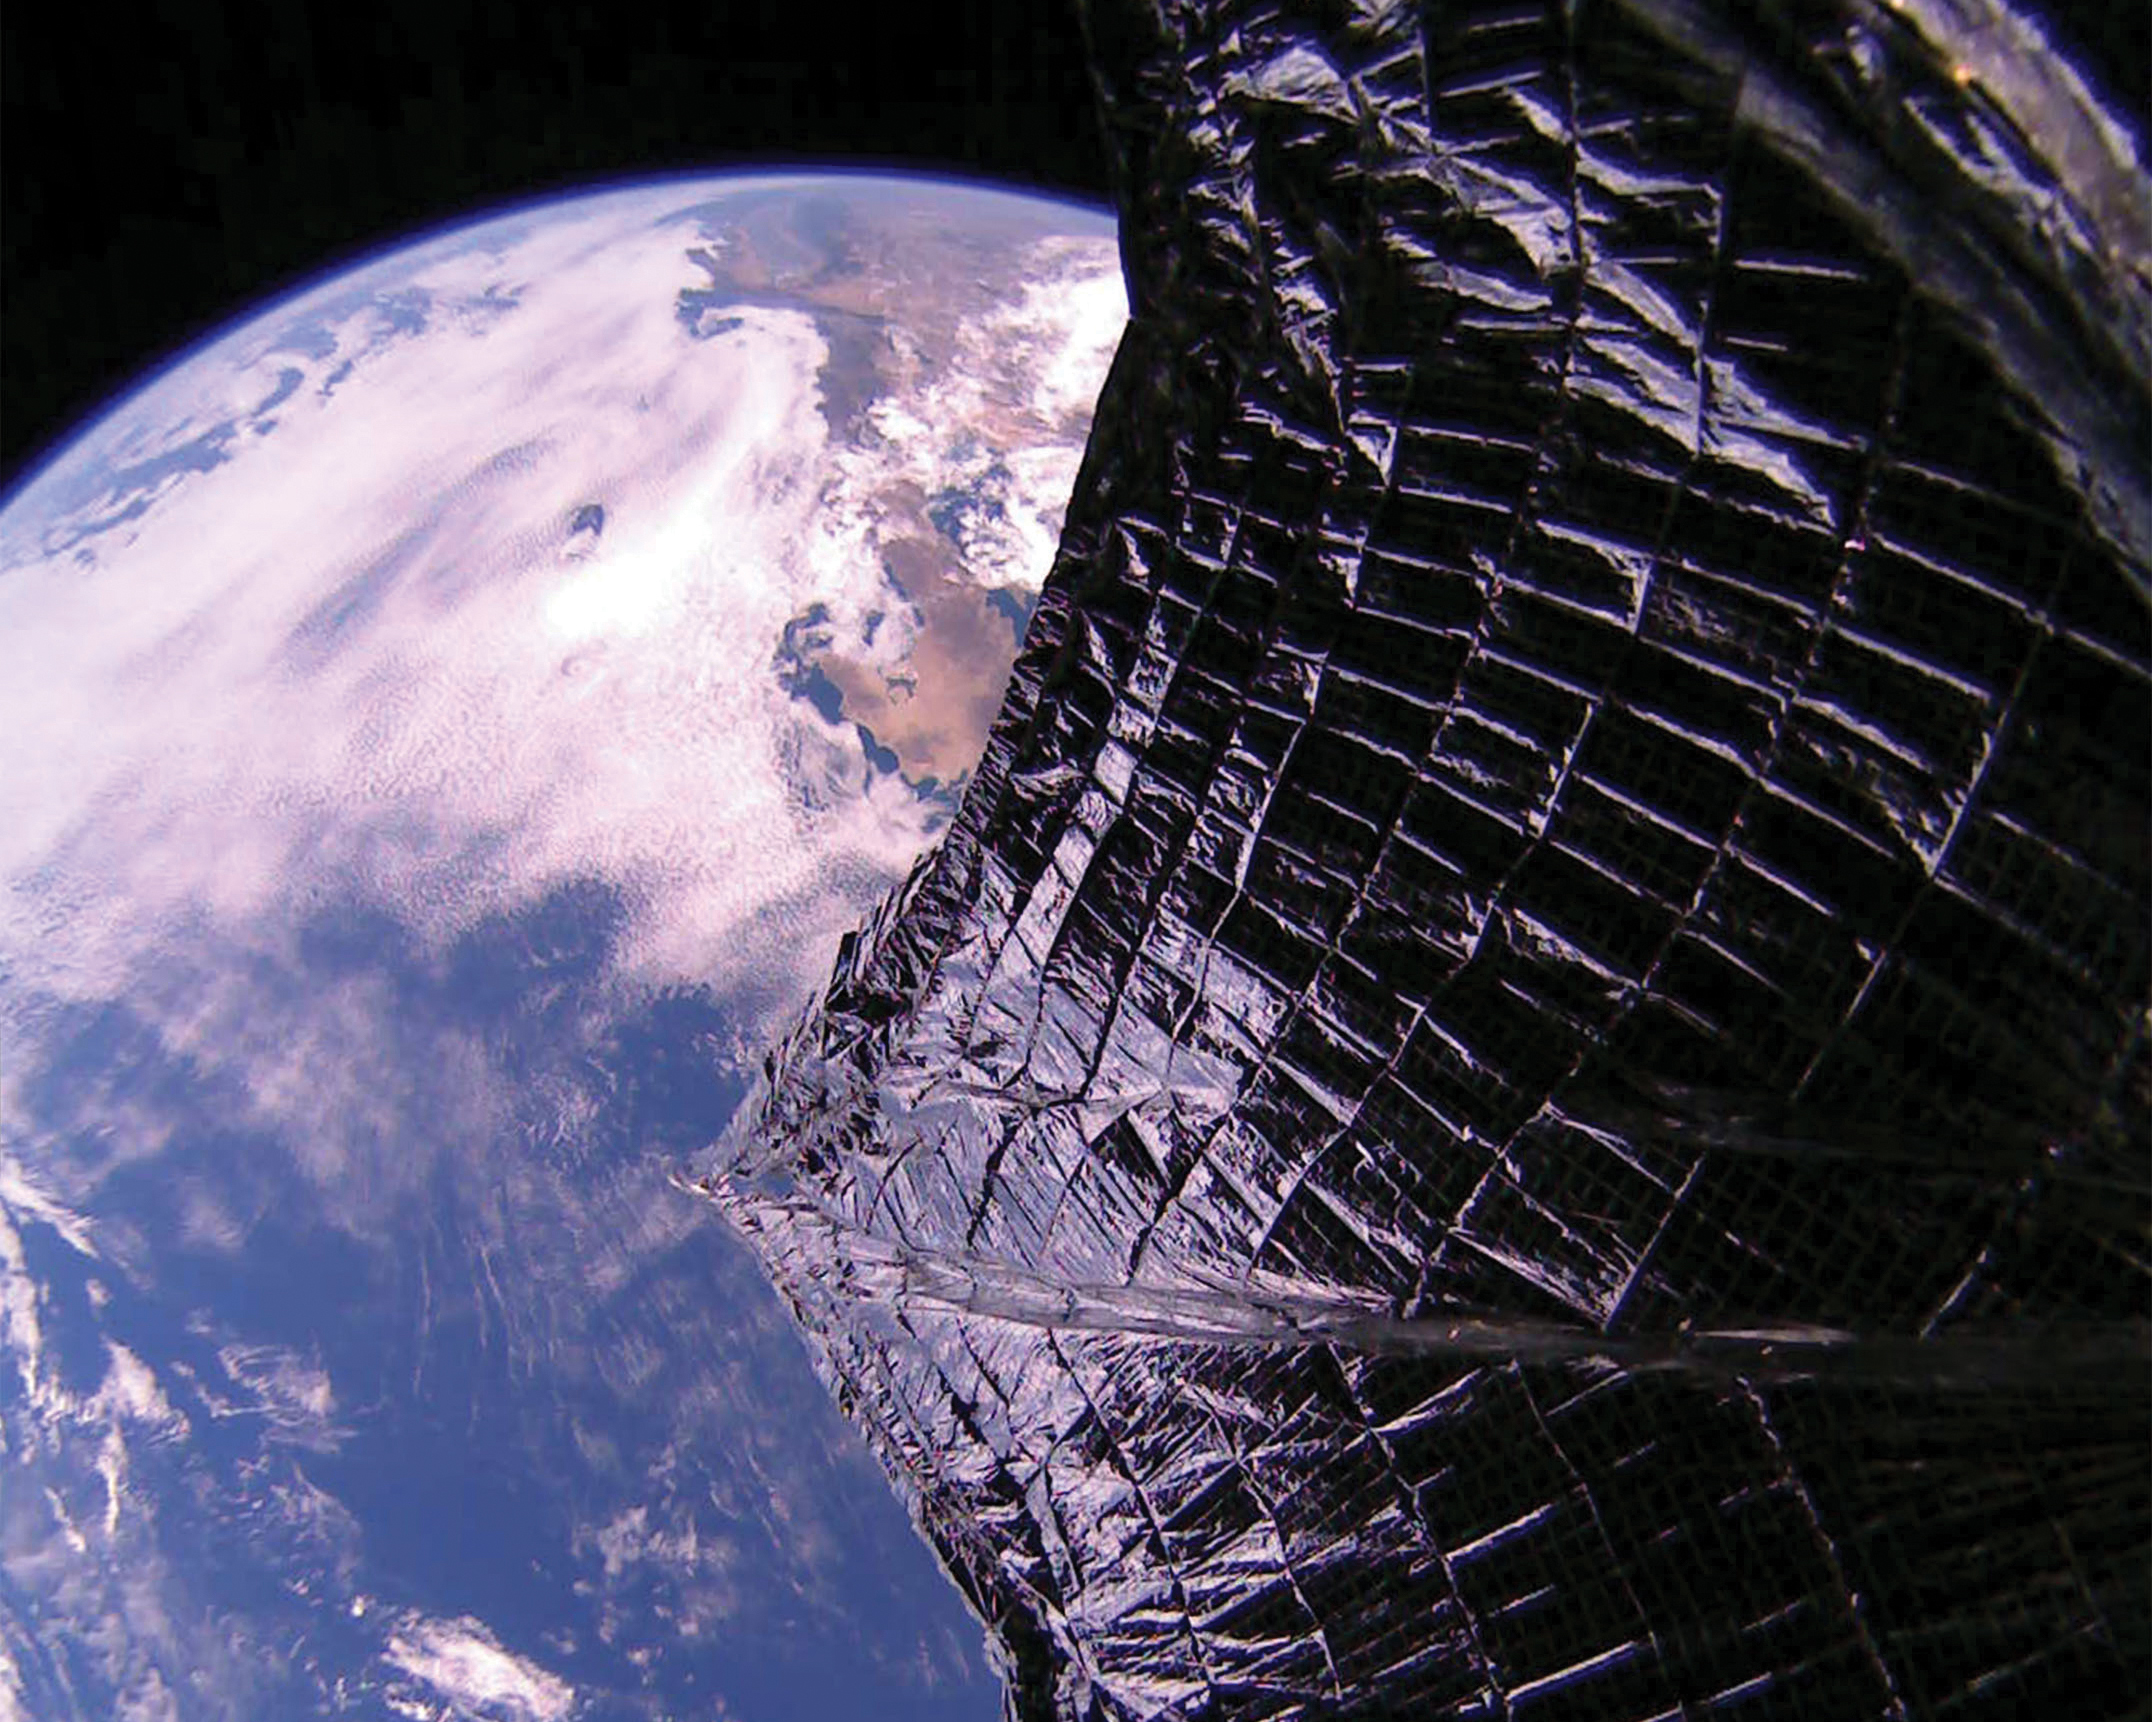 From space, a wide metal foil sail partially obscures the view of the Earth.